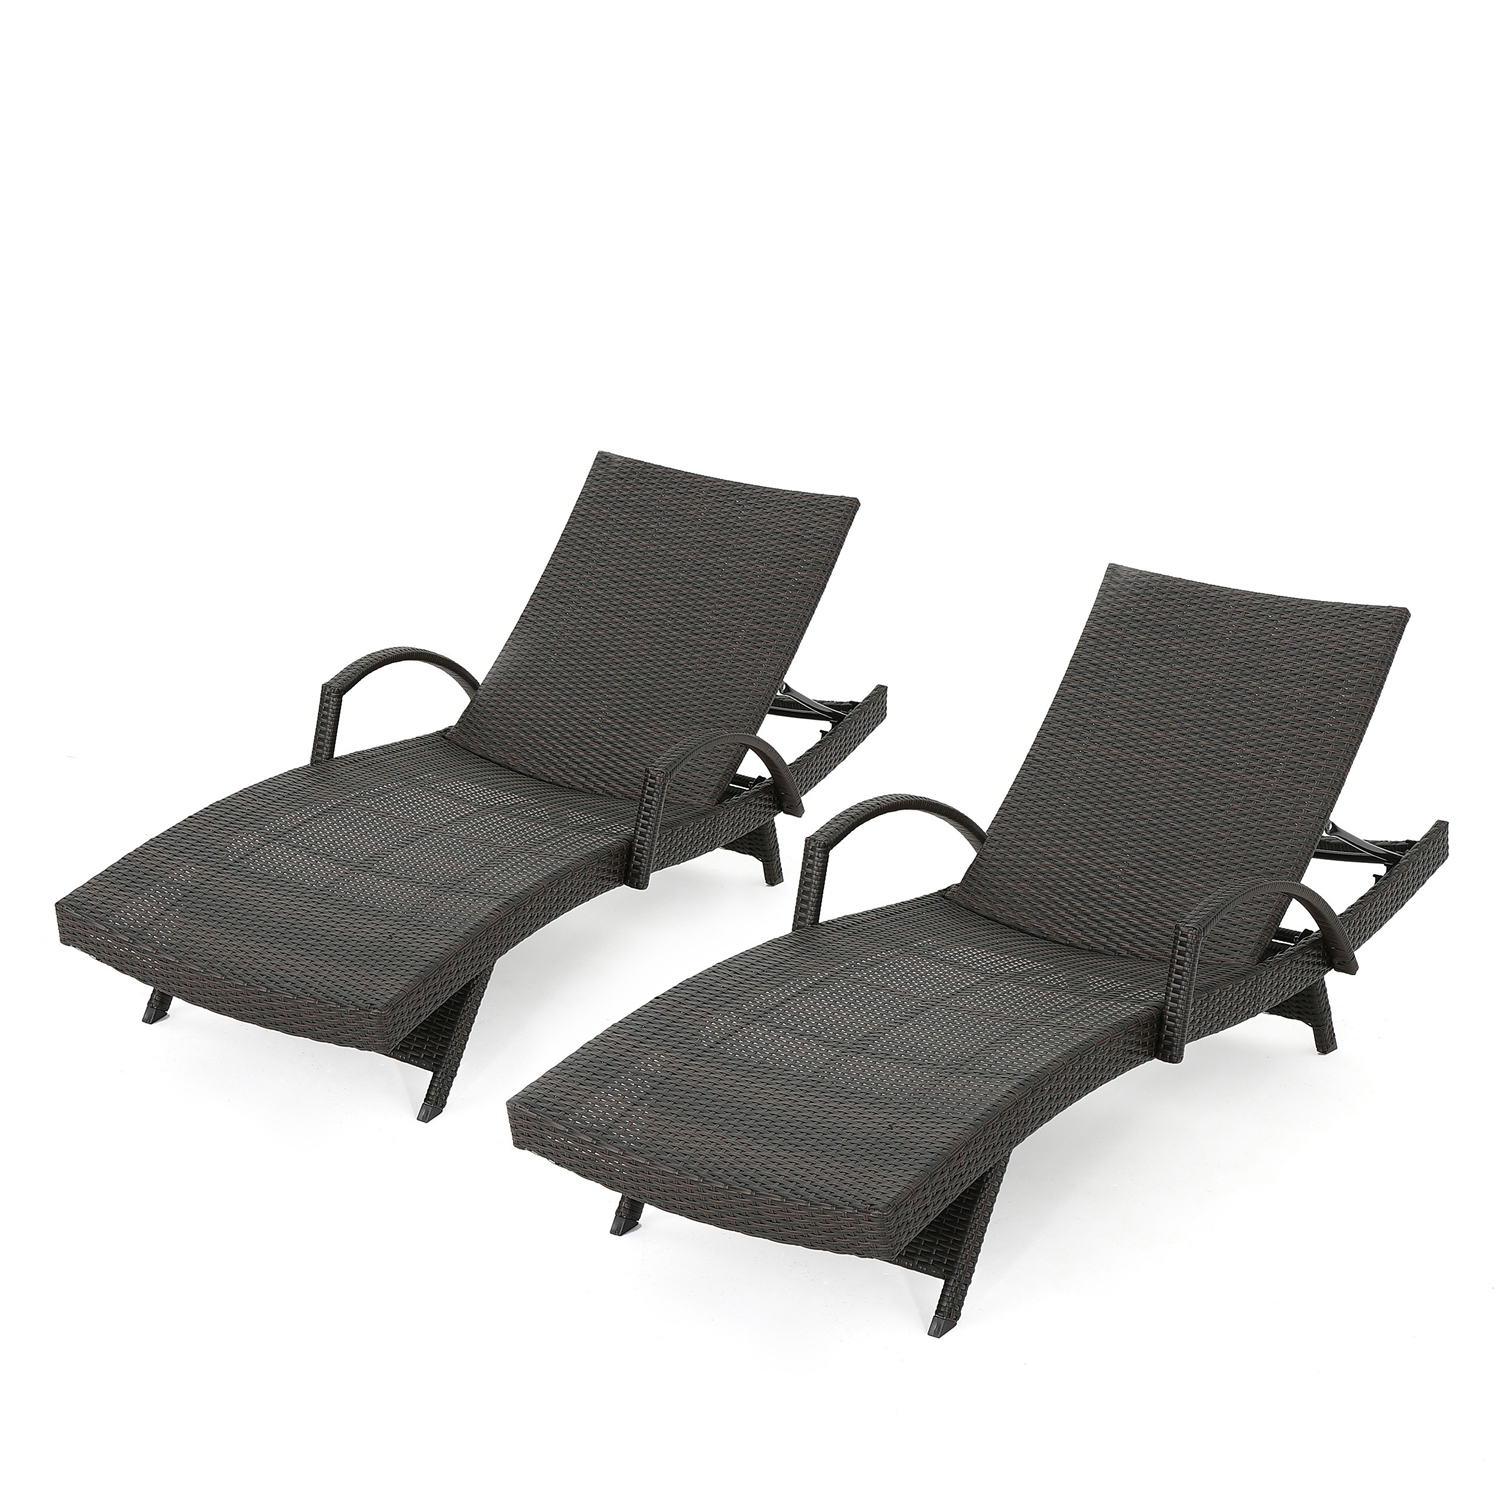 Carlsbad Wicker Chaise Lounge with Arms Set of 2